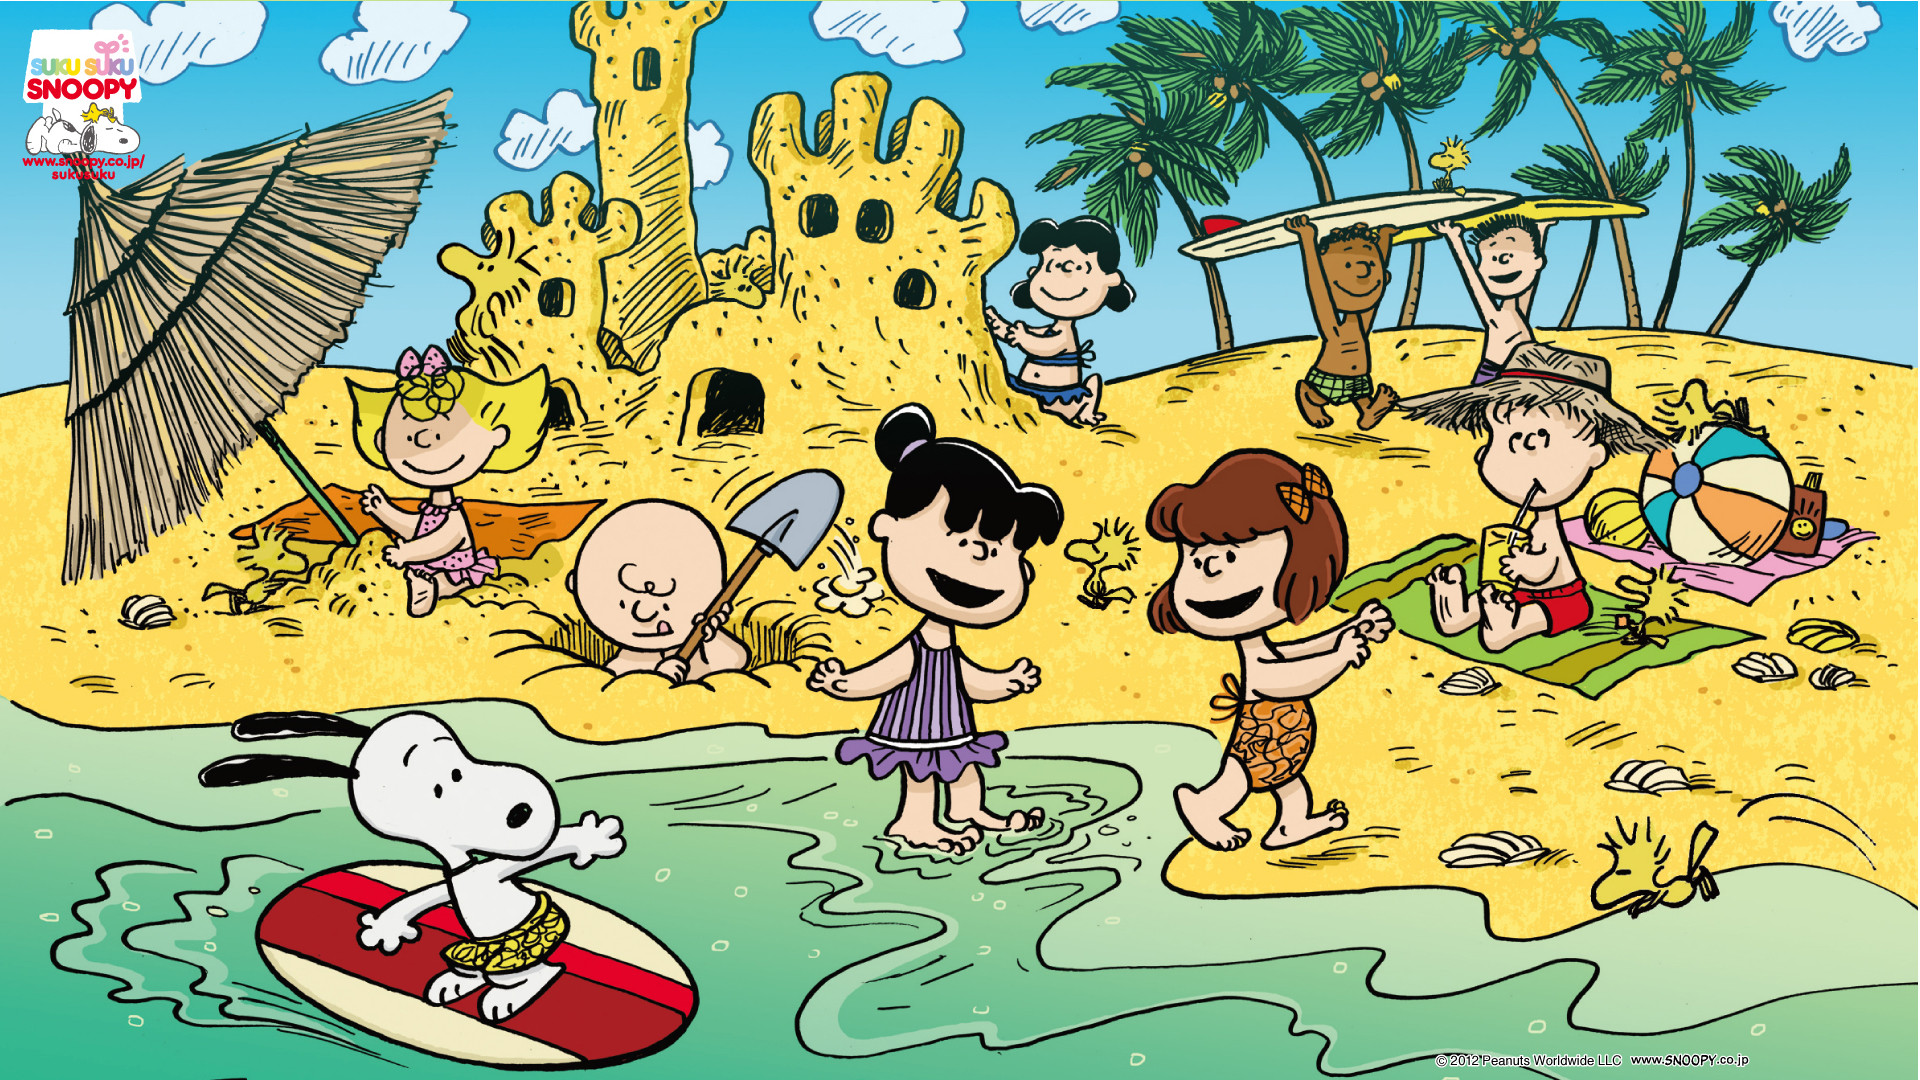 Peanuts characters wallpaper 1920x1080 10 best ideas about snoopypeanuts backgrounds on pinterest the peanuts search and snoopy sleeping voltagebd Gallery